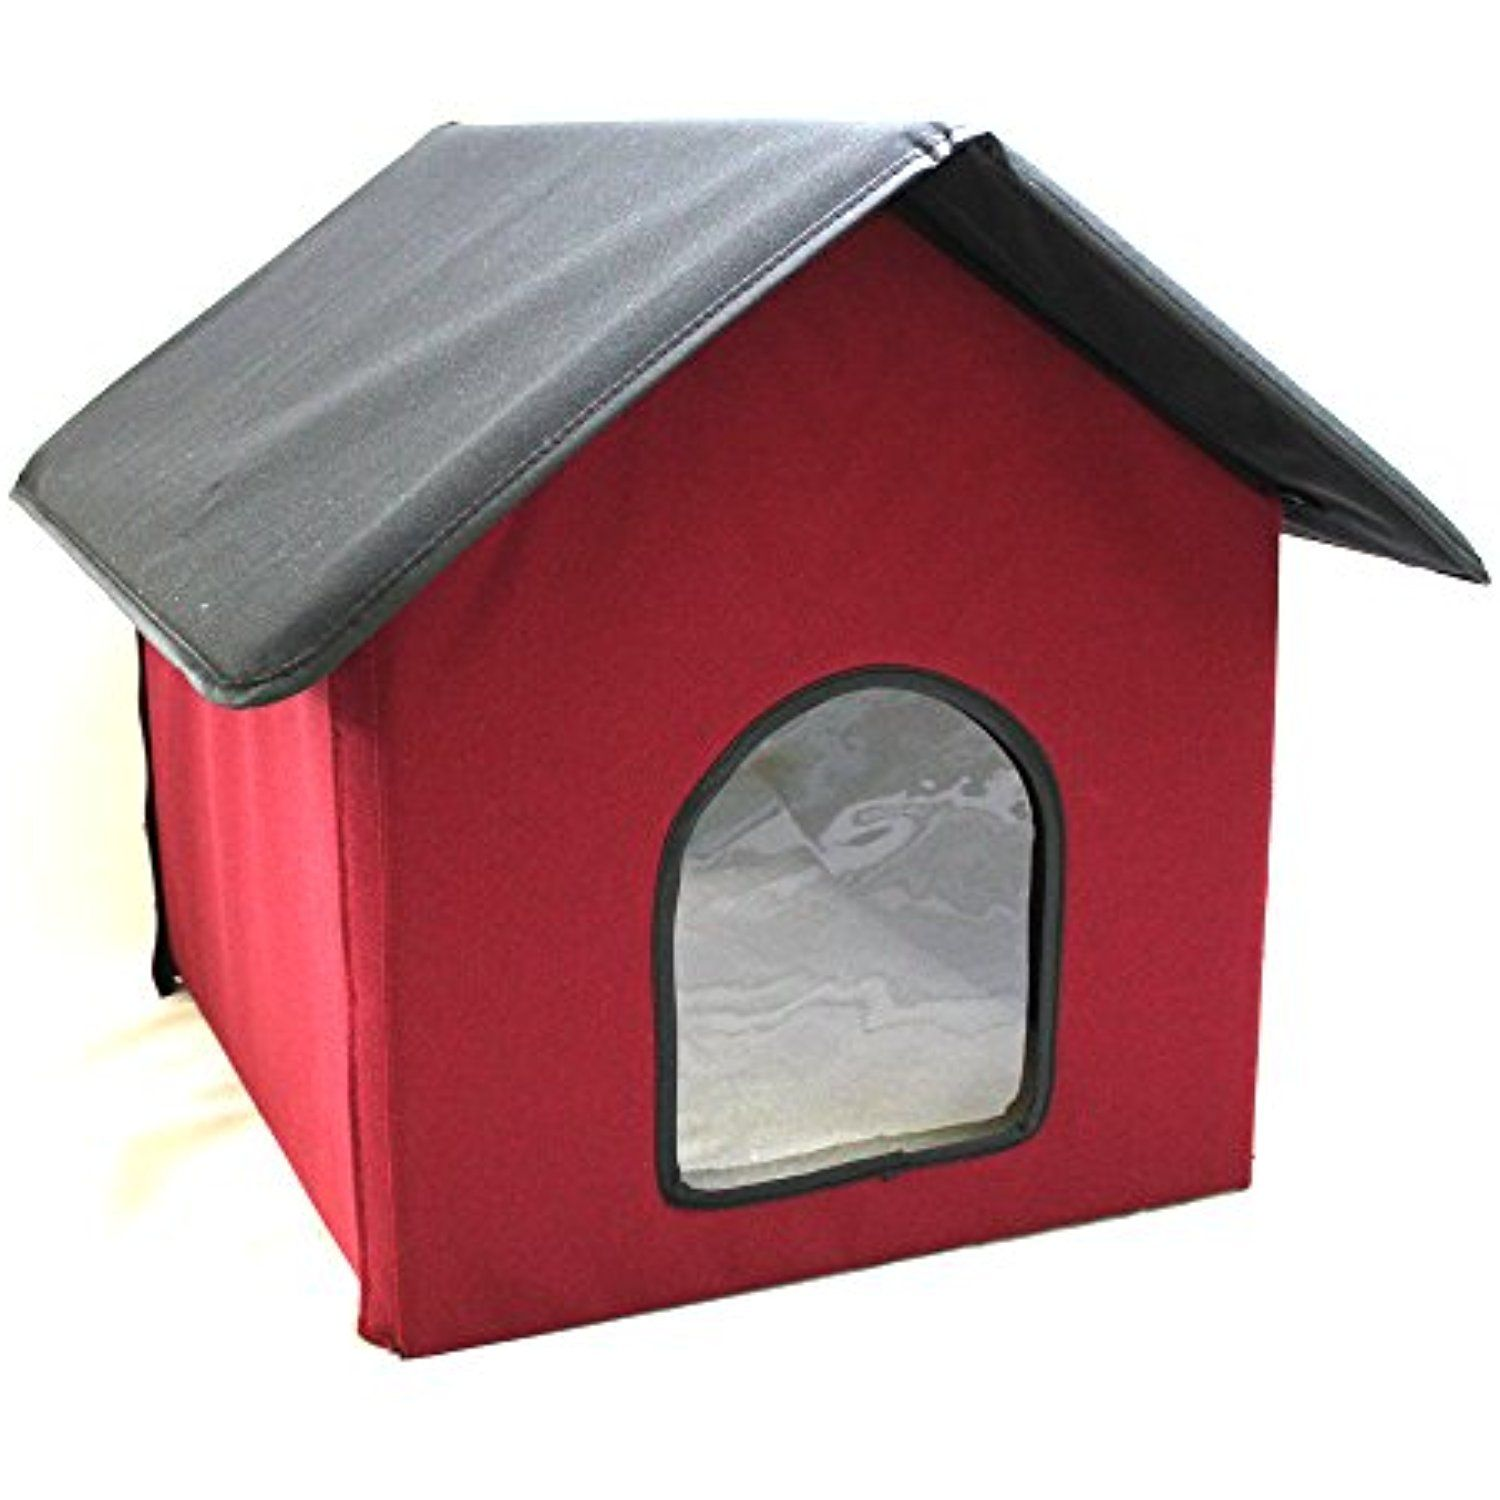 Cell Glove Soft And Safe Warm Cozy Outdoor Heated Pet Kitty Cat House Red